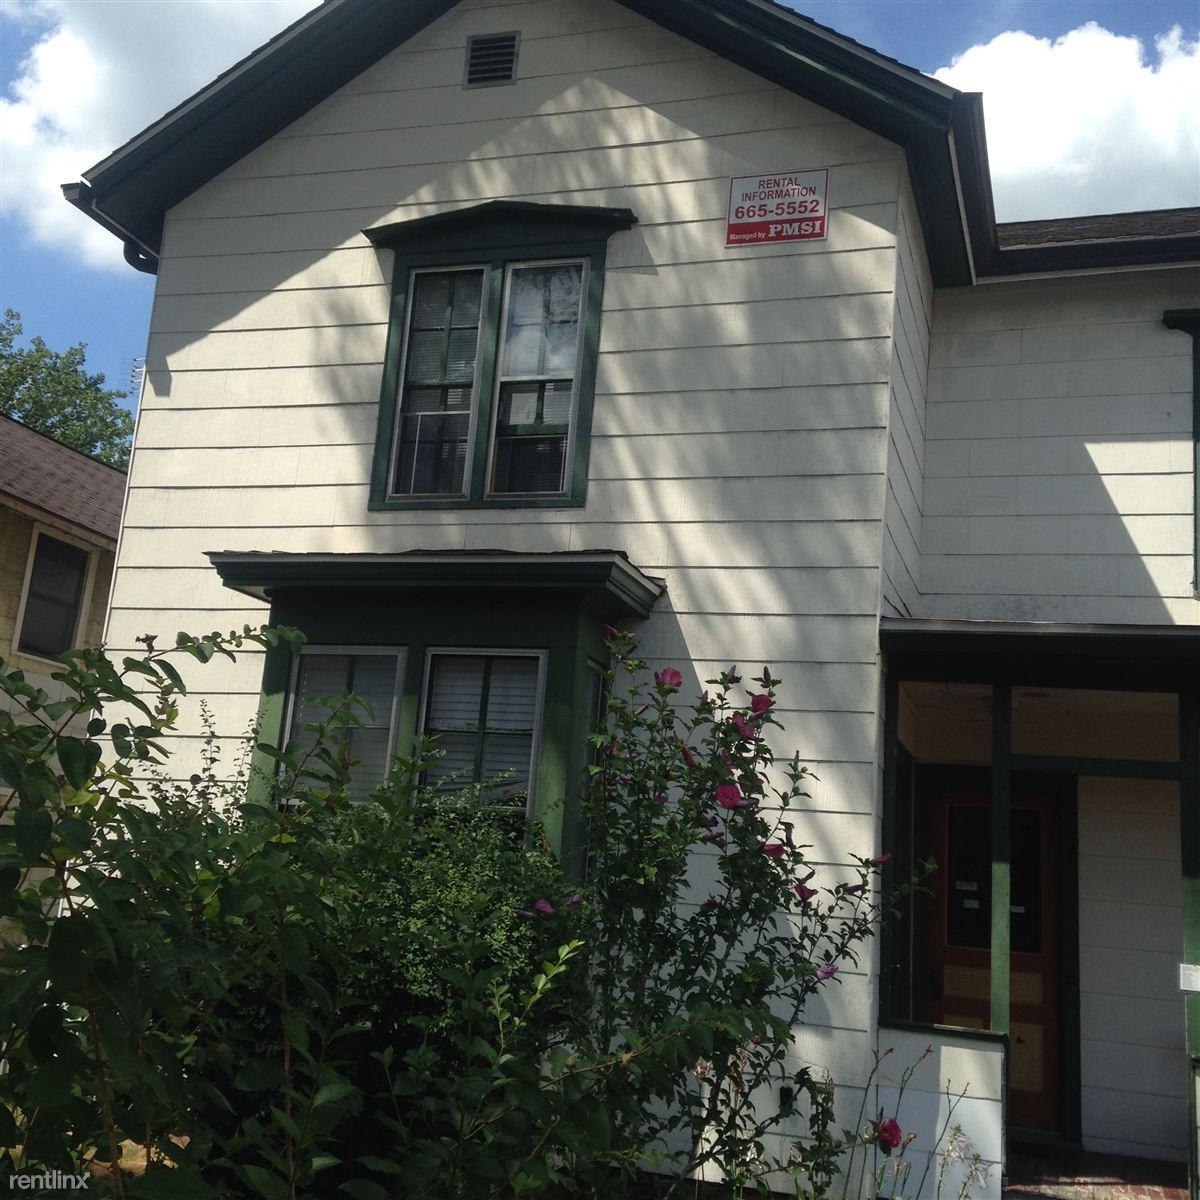 533 Elizabeth St Apartments For Rent In Ann Arbor, MI